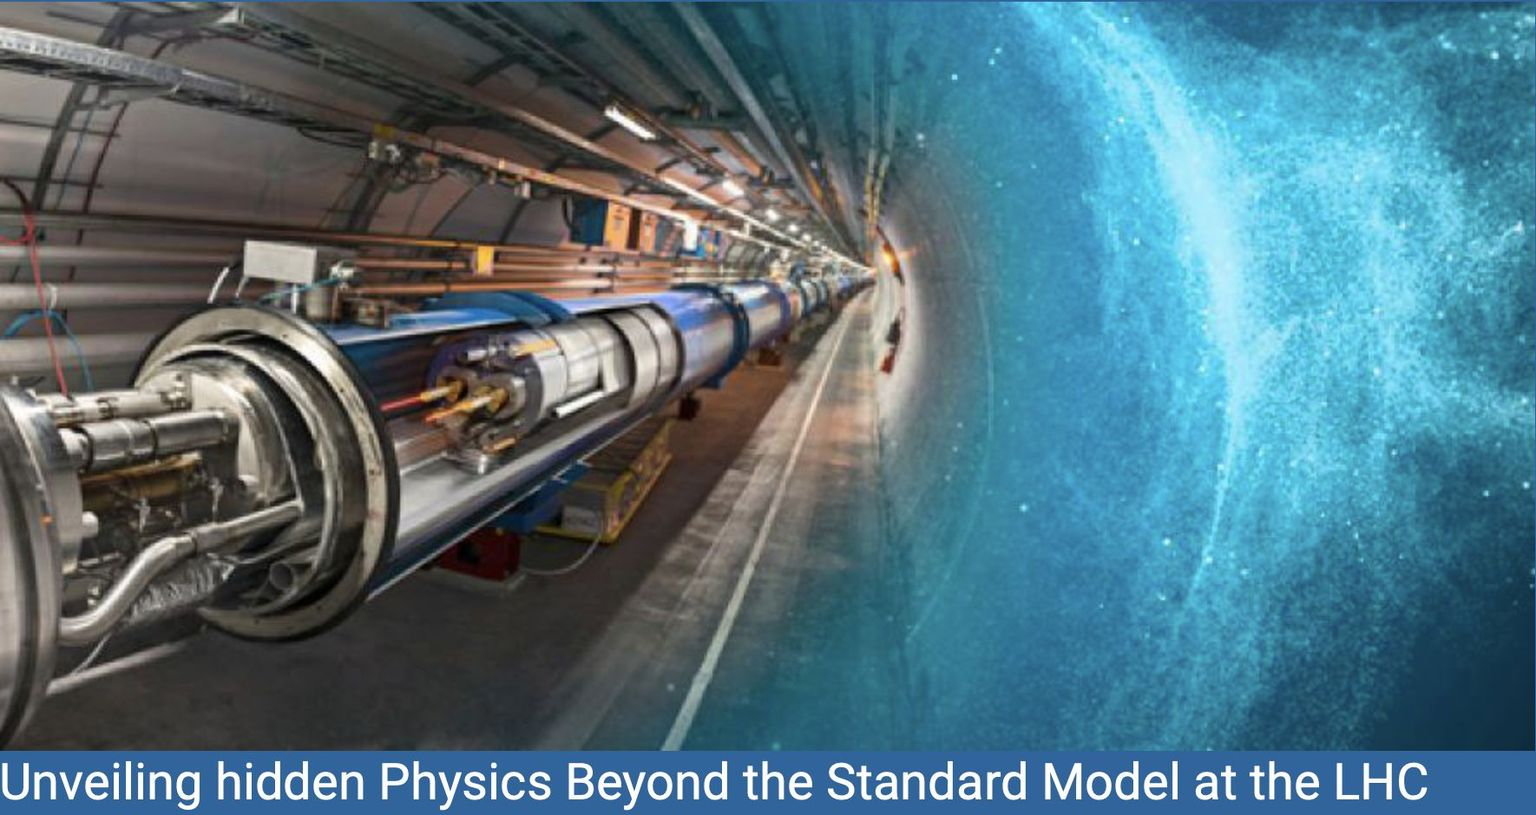 Unveiling hidden Physics Beyond the Standard Model at the LHC - image